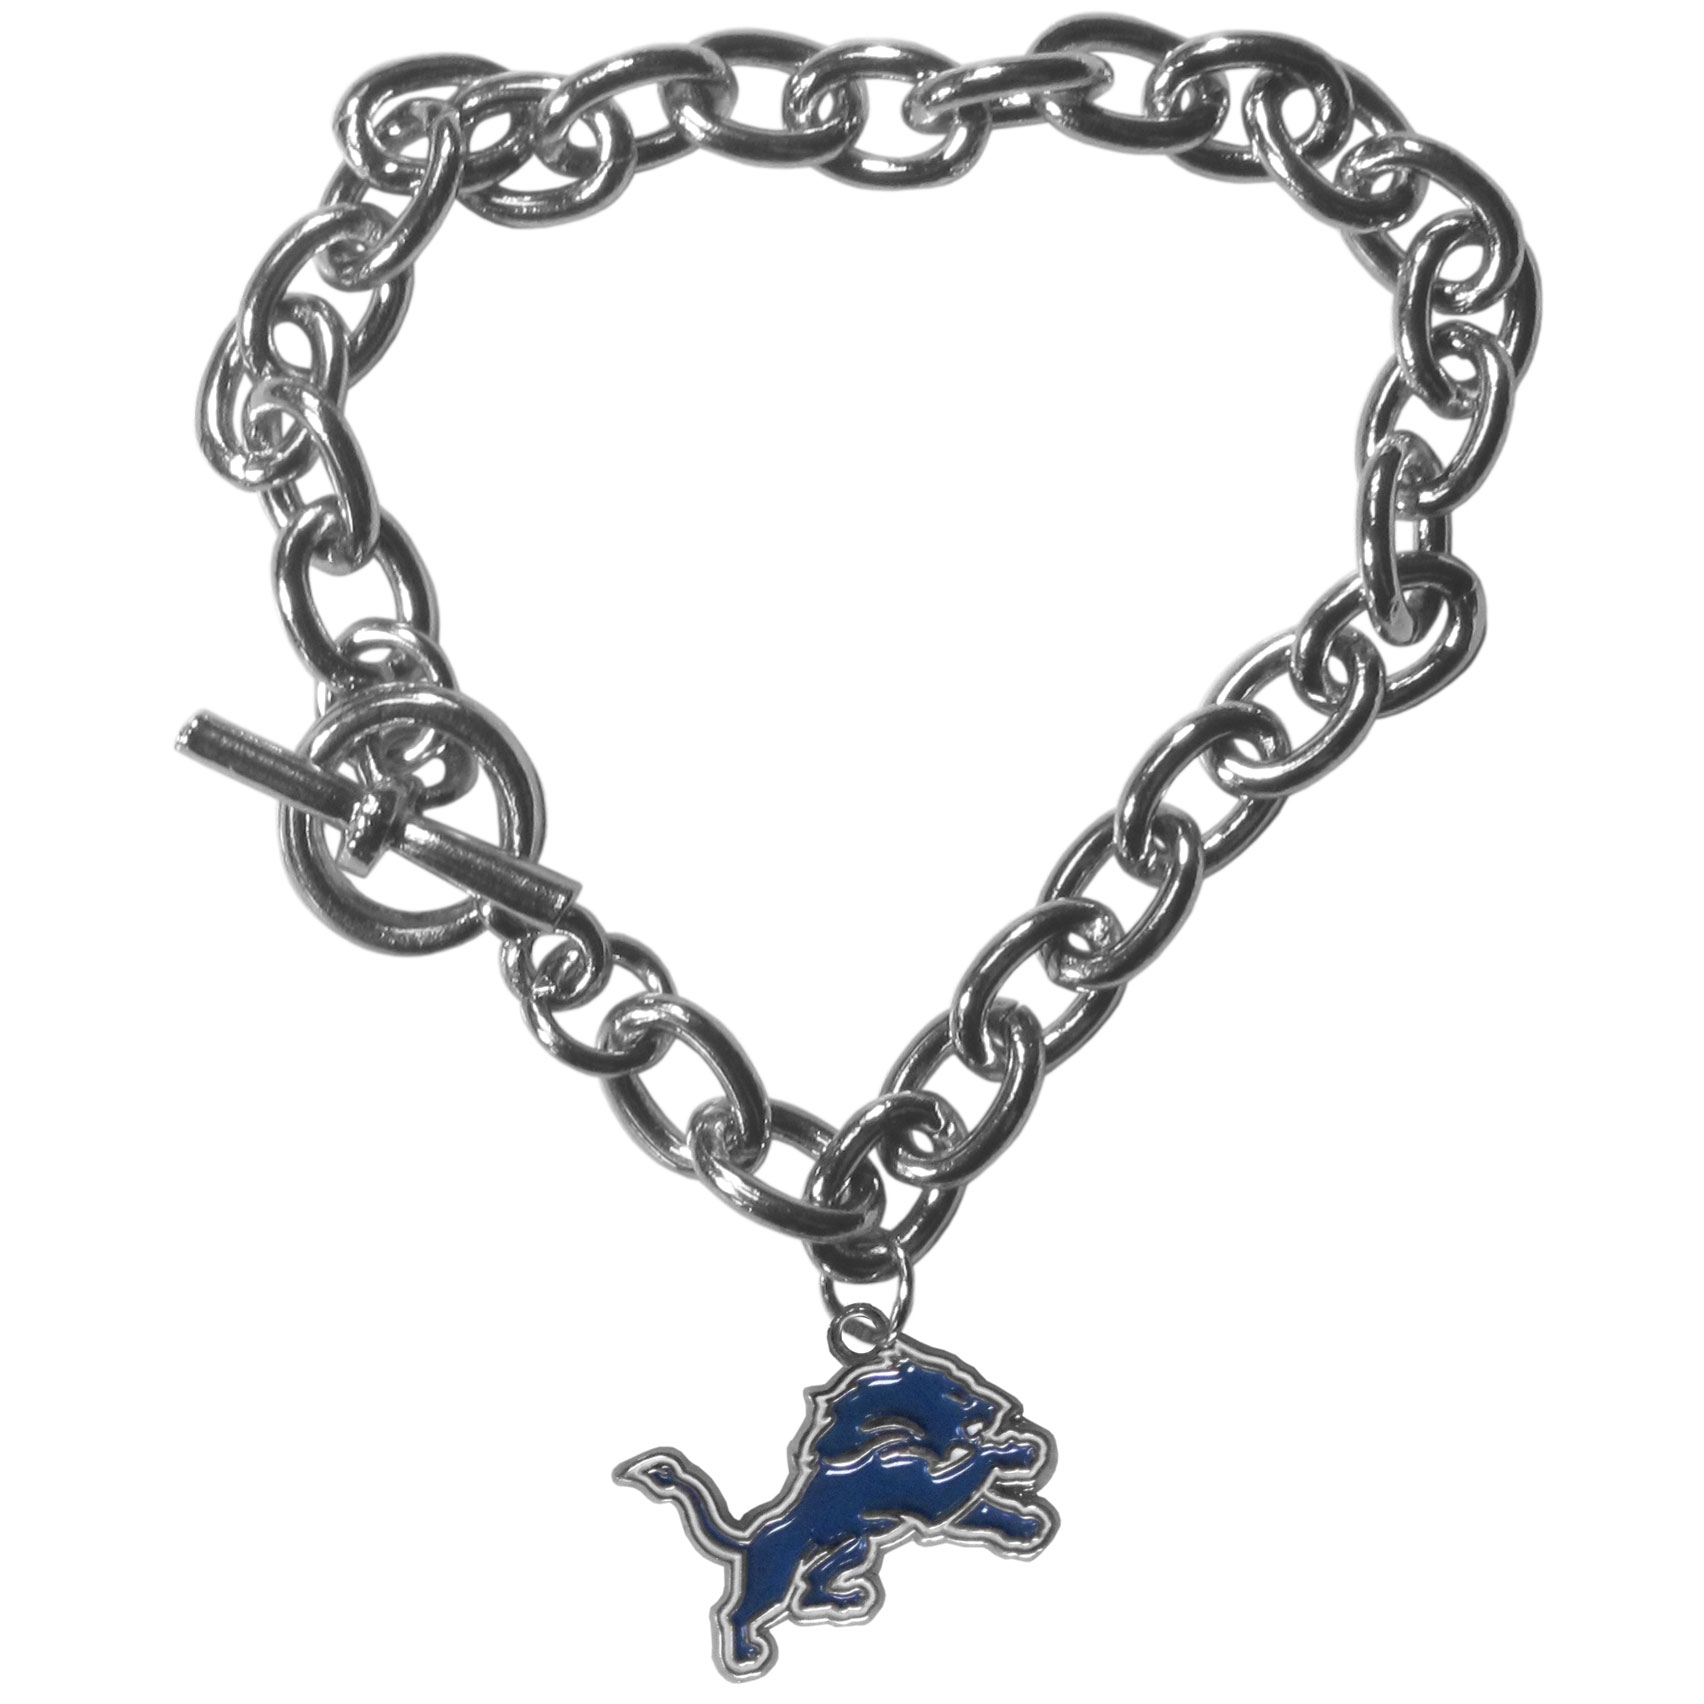 Detroit Lions Charm Chain Bracelet - Our classic single charm bracelet is a great way to show off your team pride! The 7.5 inch large link chain features a high polish Detroit Lions charm and features a toggle clasp which makes it super easy to take on and off.